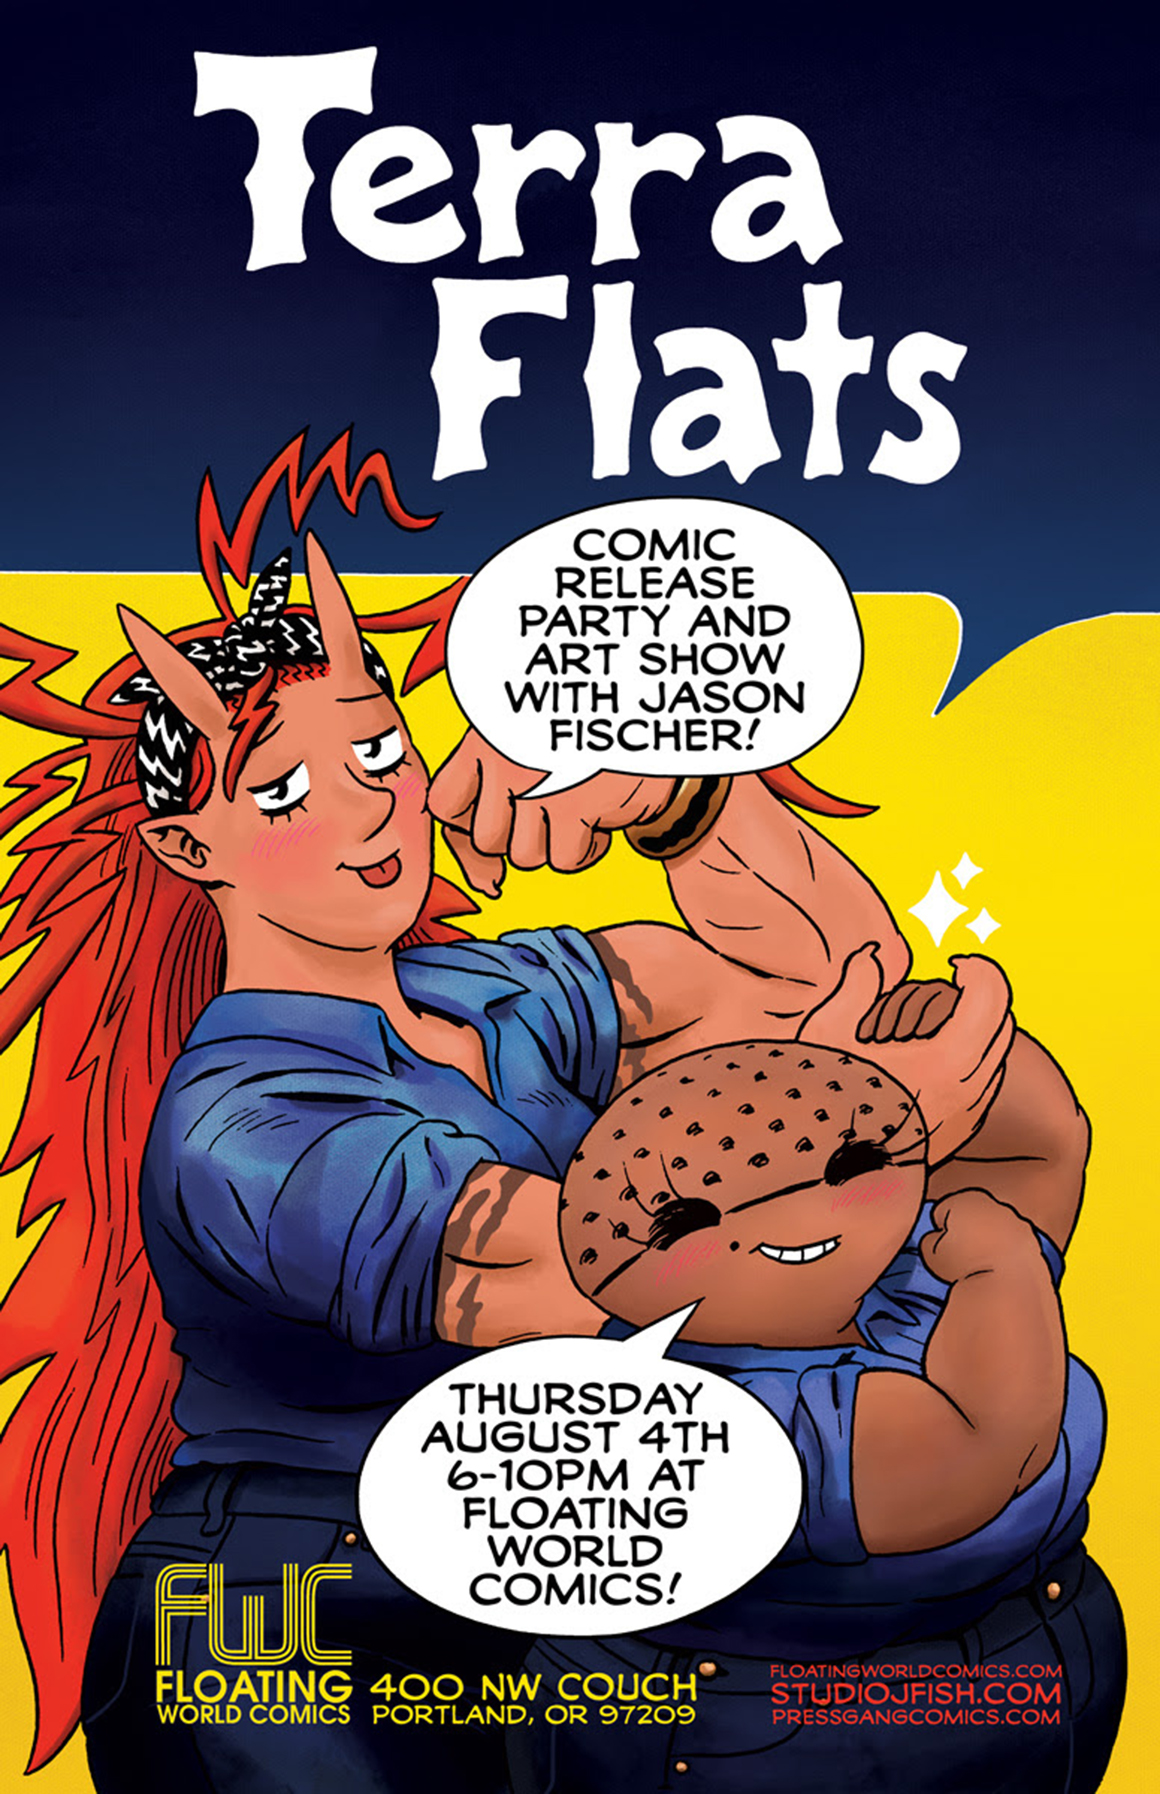 Terra Flats Release Party With Jason Fischer On August 4th Comic